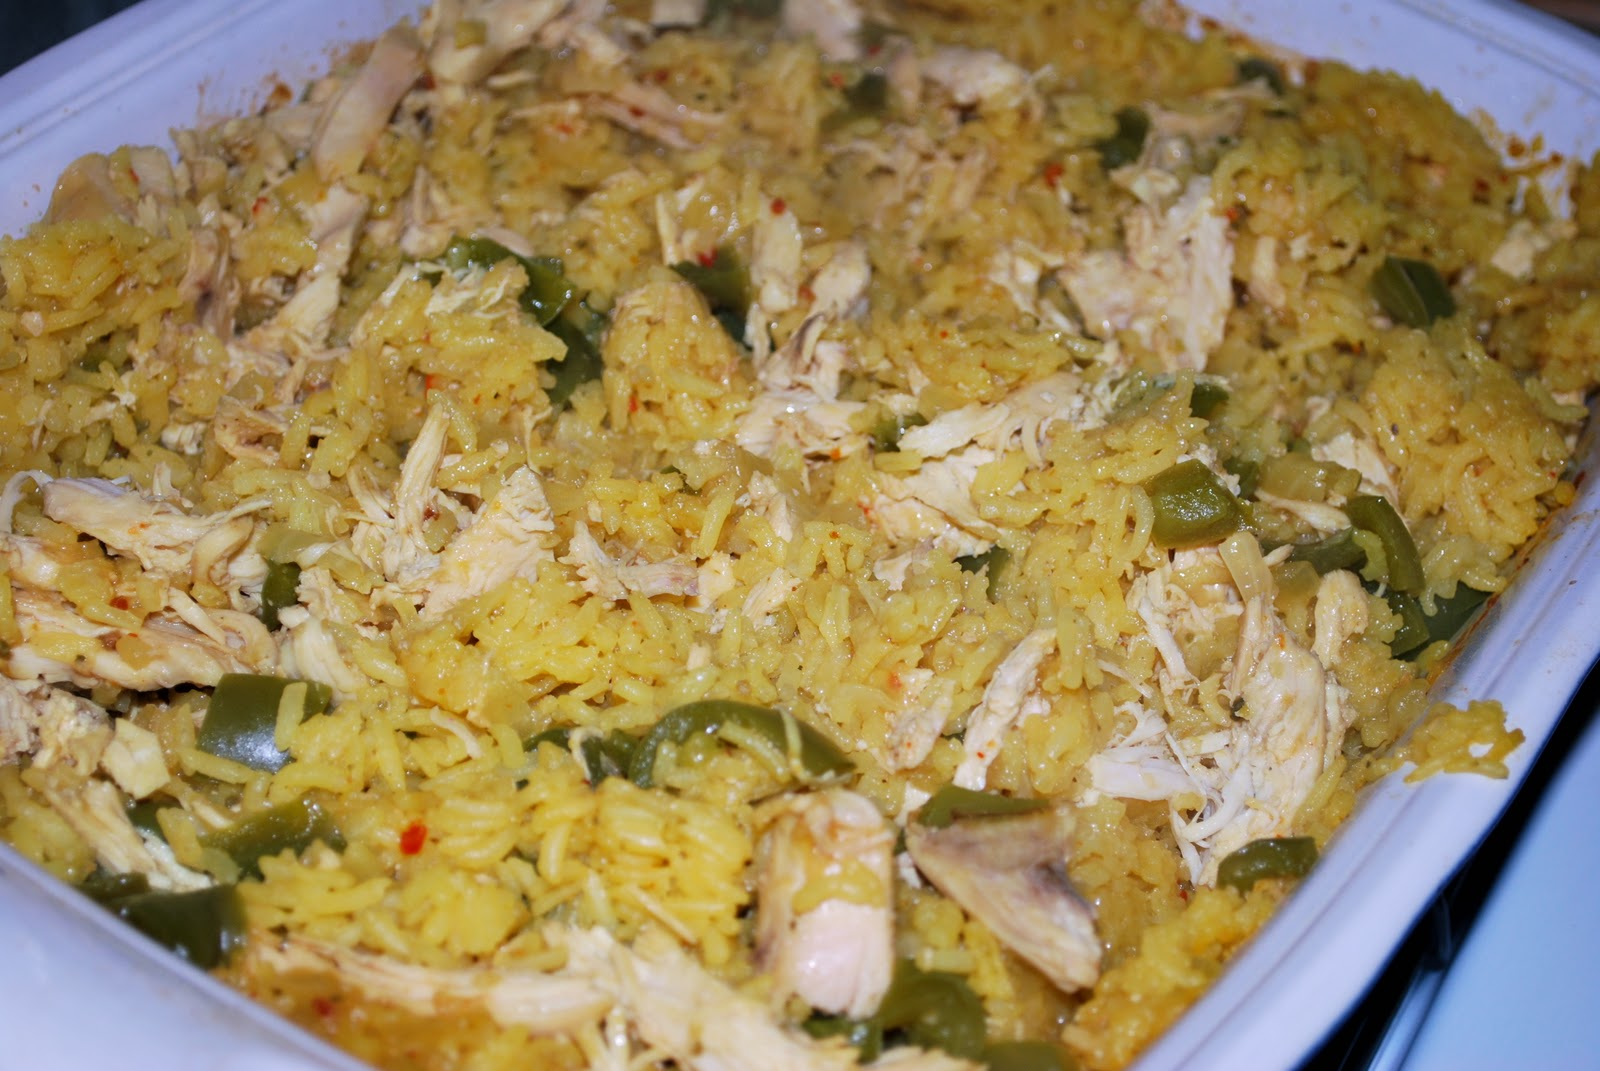 Wise Cook: Easy Baked Chicken and Yellow Rice